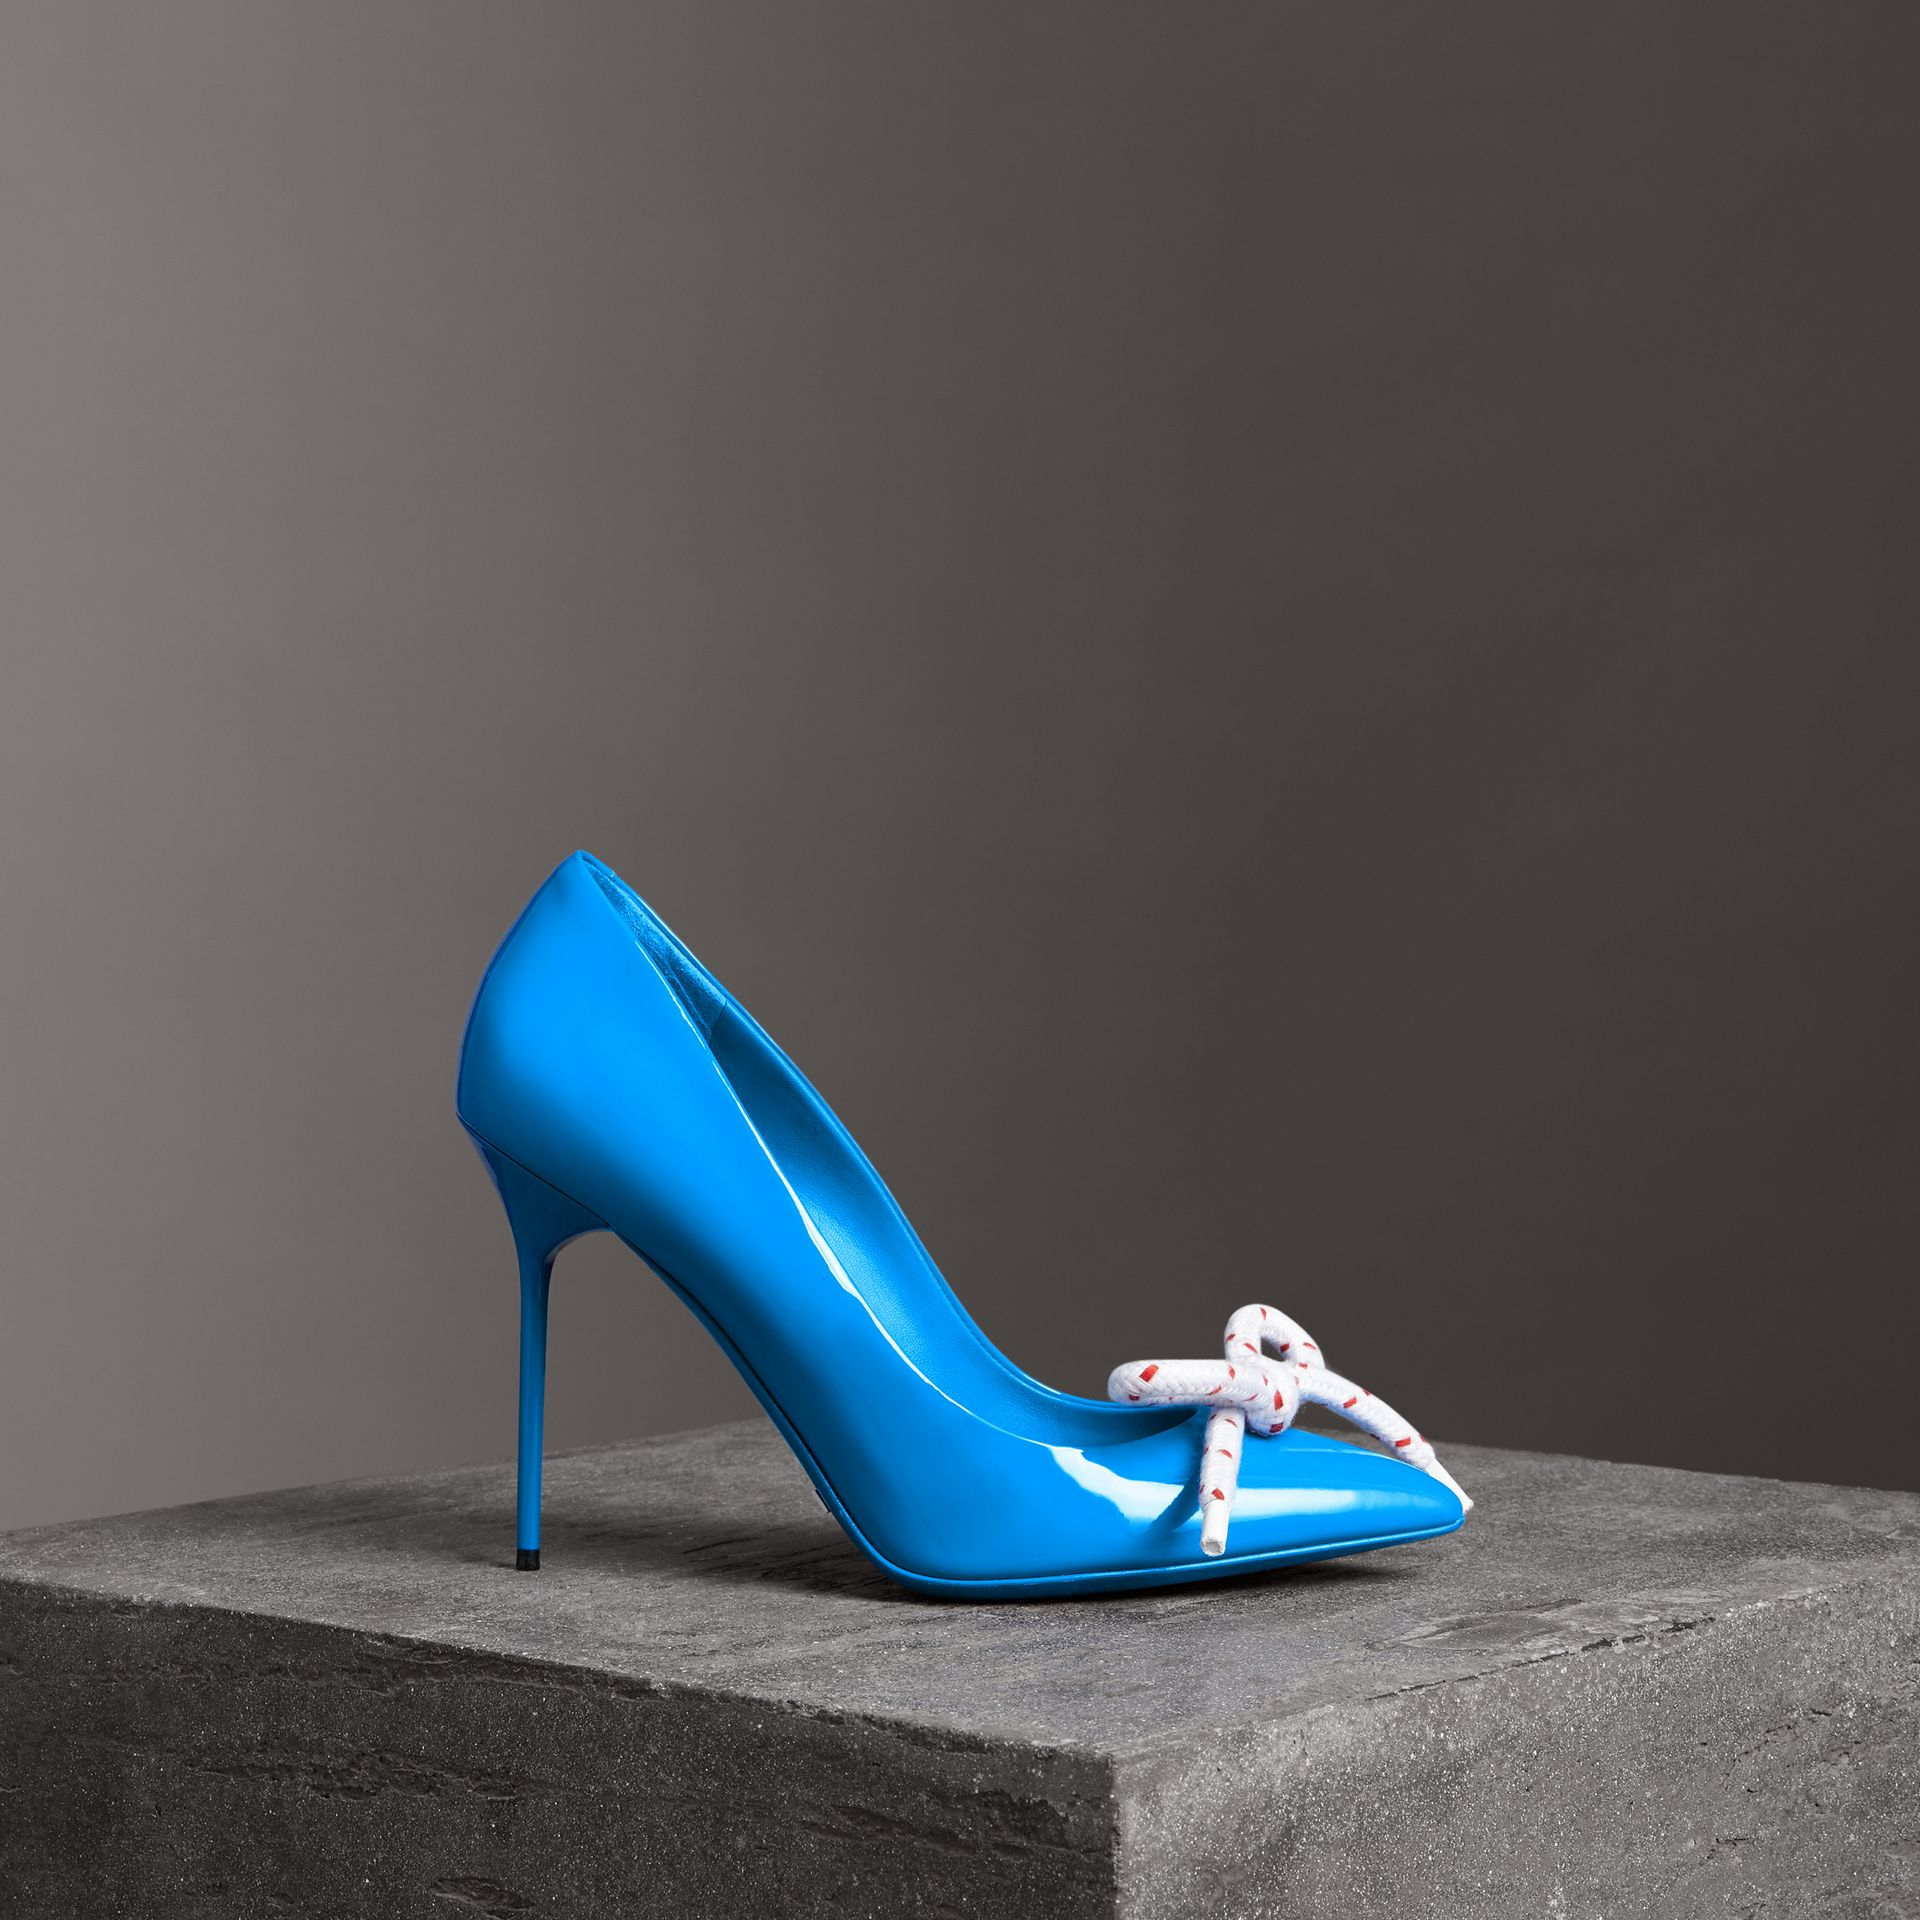 Stiletto-Pumps aus Lackleder mit Kordeldetail (Azurblau) - Damen | Burberry - Galerie-Bild 0